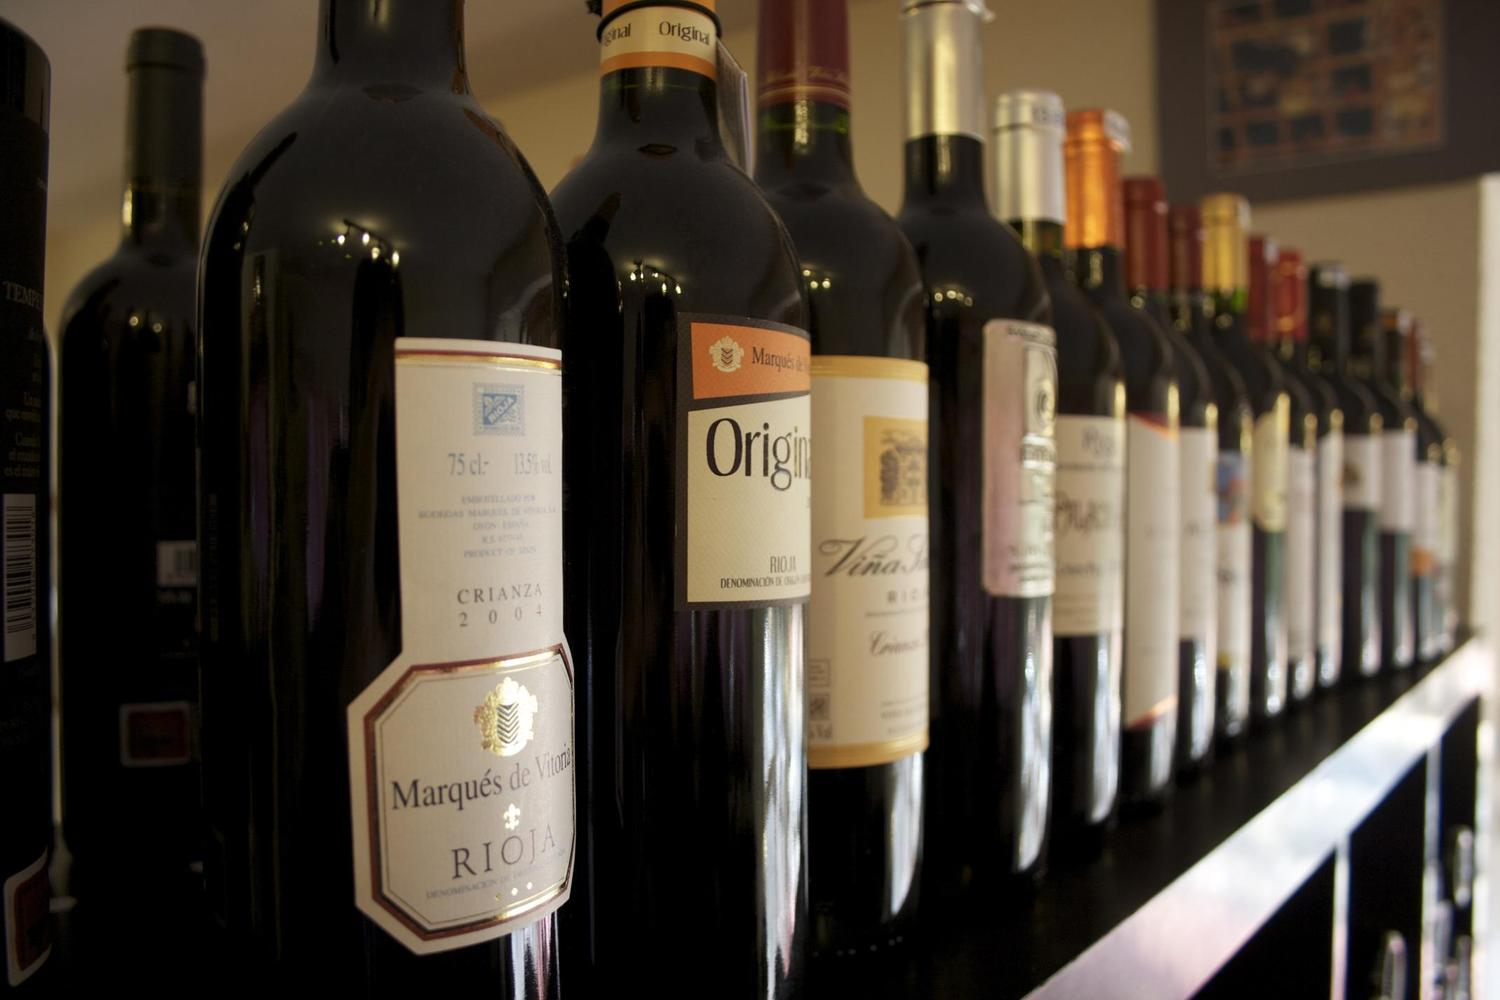 Wines lined up in a Vinoteca in La Rioja